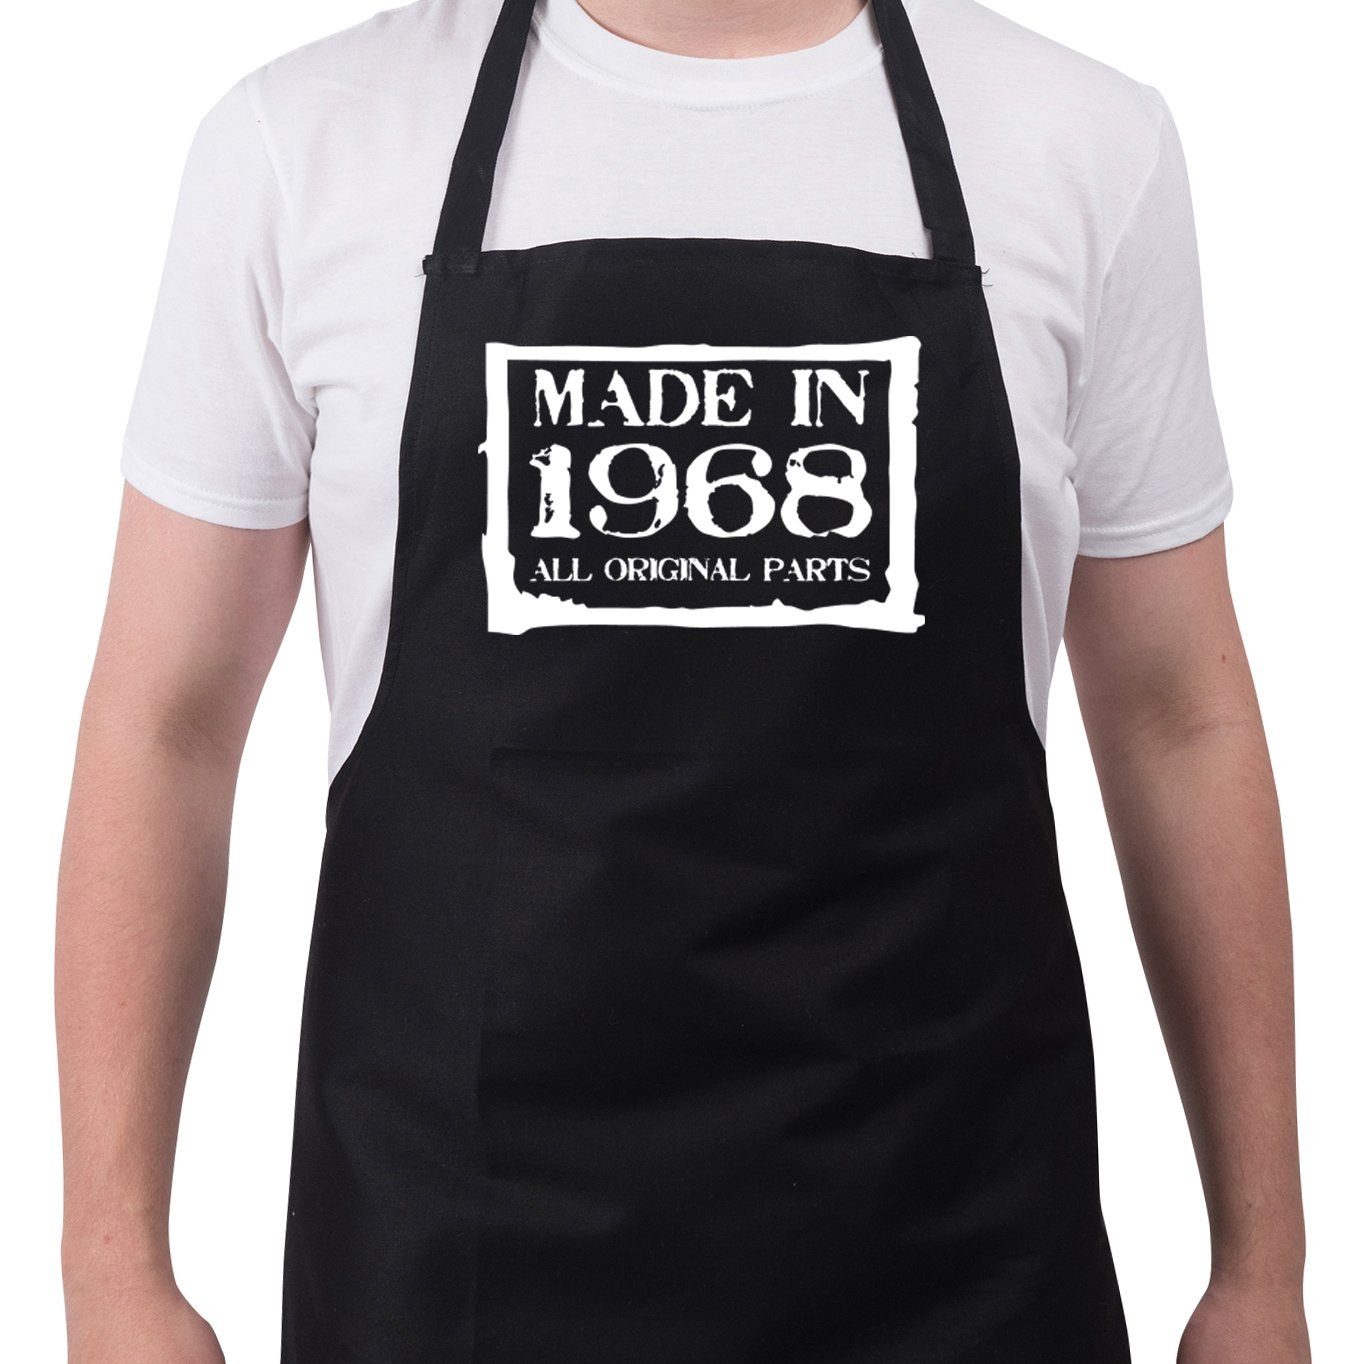 f40ca978 Men\'s birthday Made in 1968 funny bbq kitchen cooking baking aprons. Funny  novelty 50th Birthday gift ideas apron all original parts This funny apron  will ...